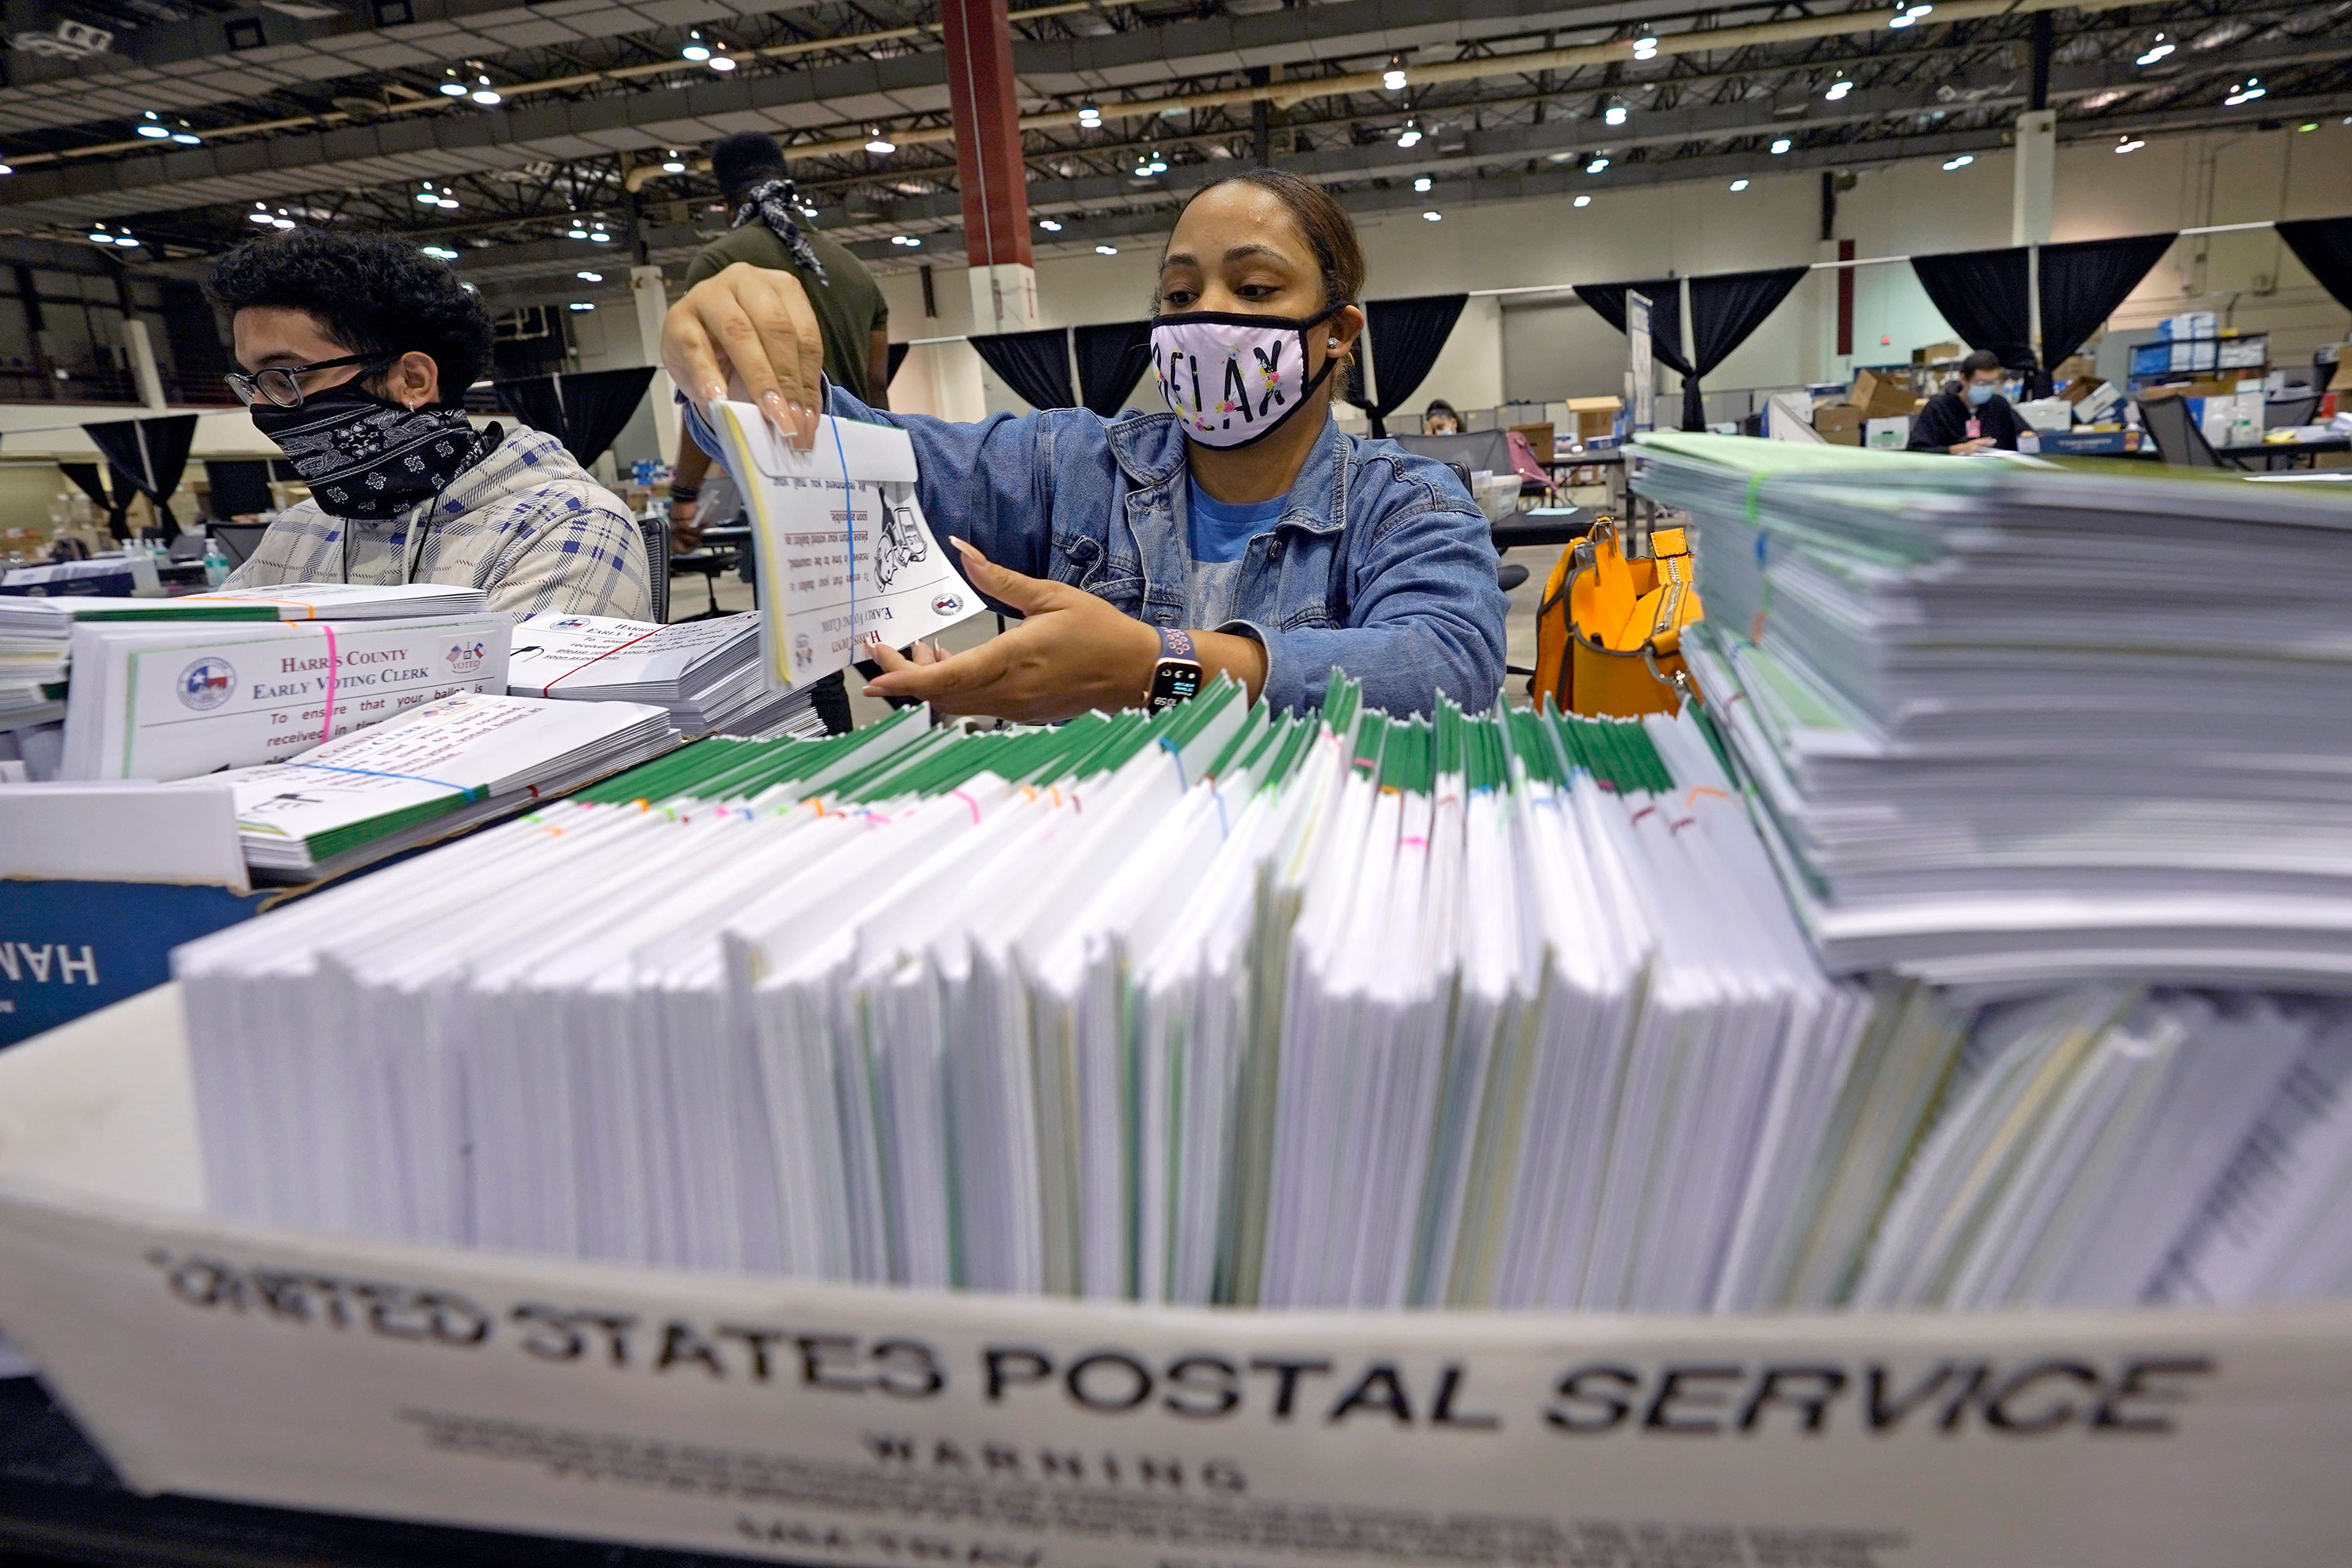 A Harris County election worker prepares mail-in ballots to be sent out to voters September 29 in Houston, Texas.